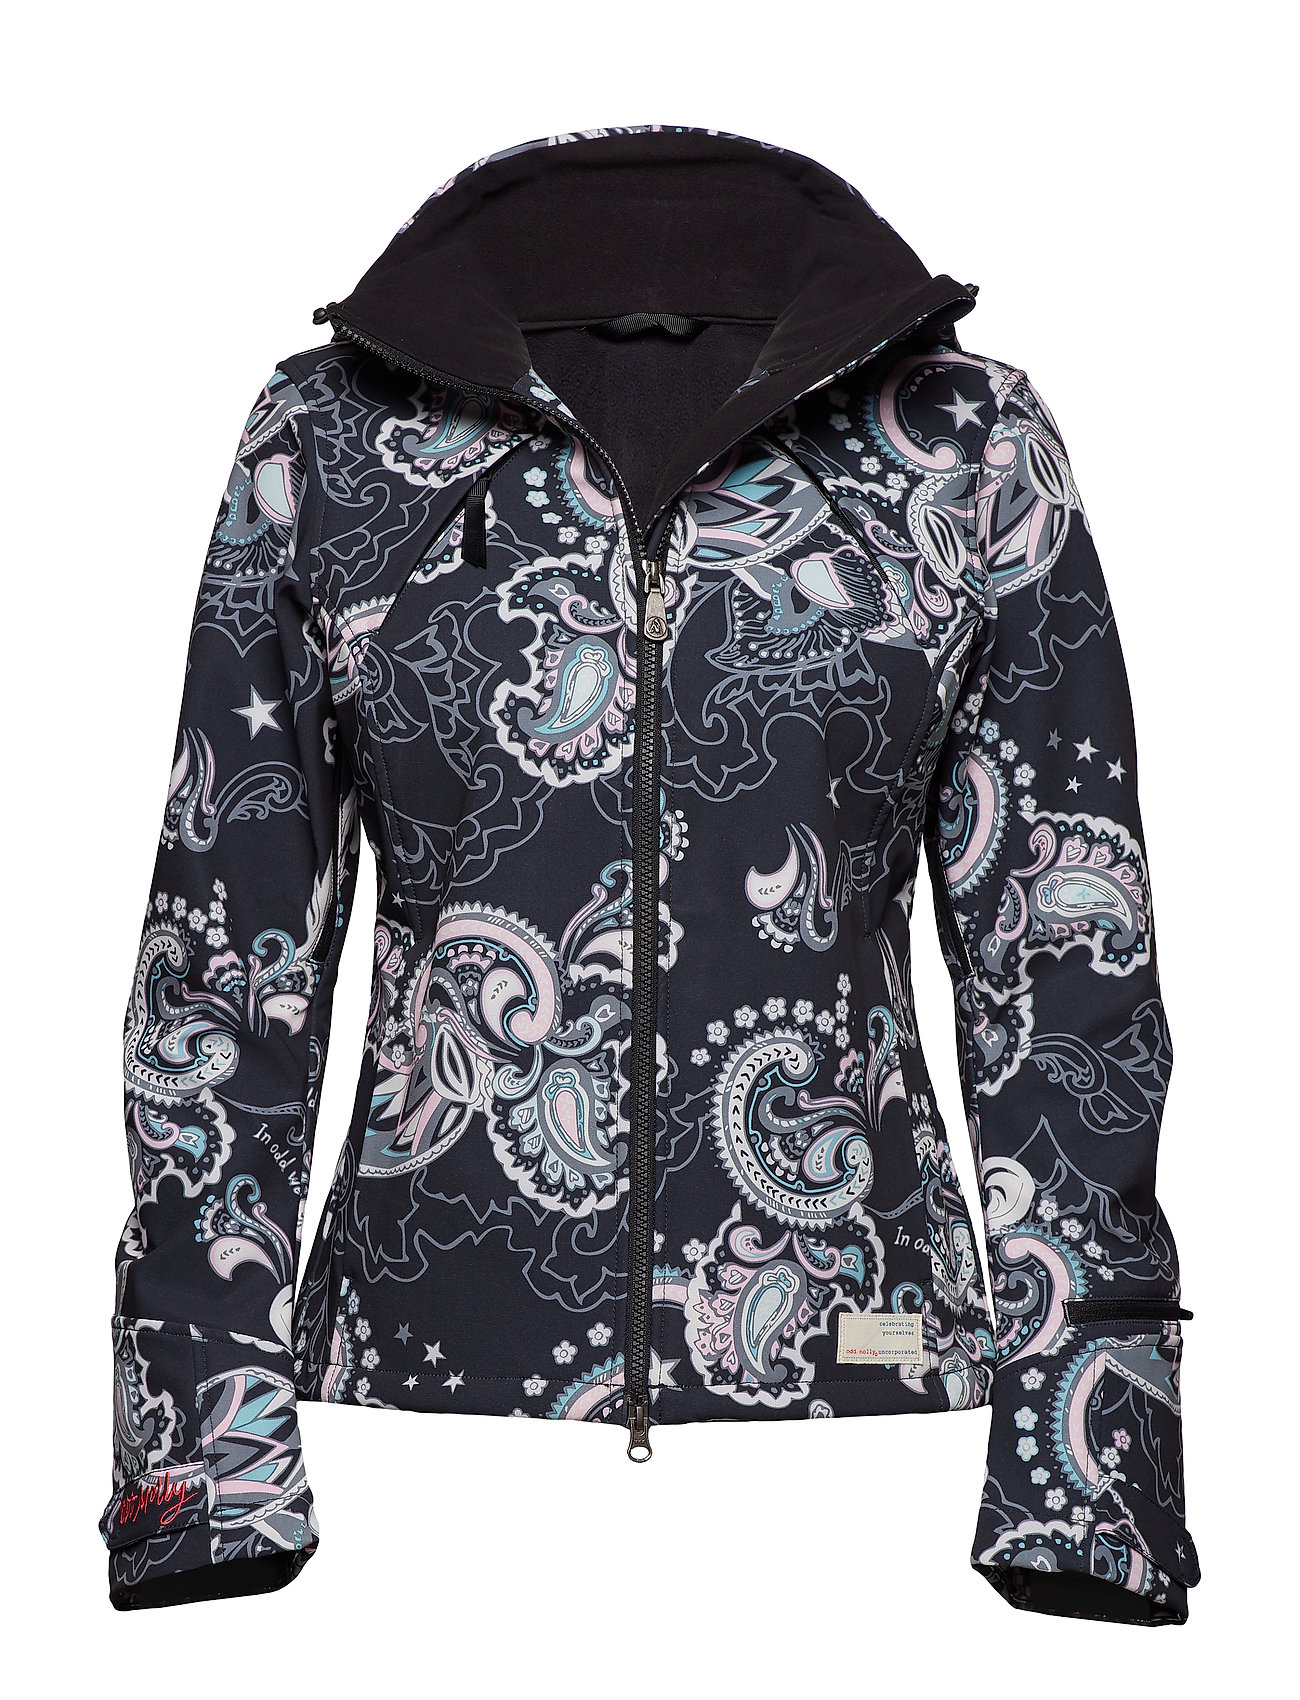 ODD MOLLY ACTIVE WEAR drifting jacket